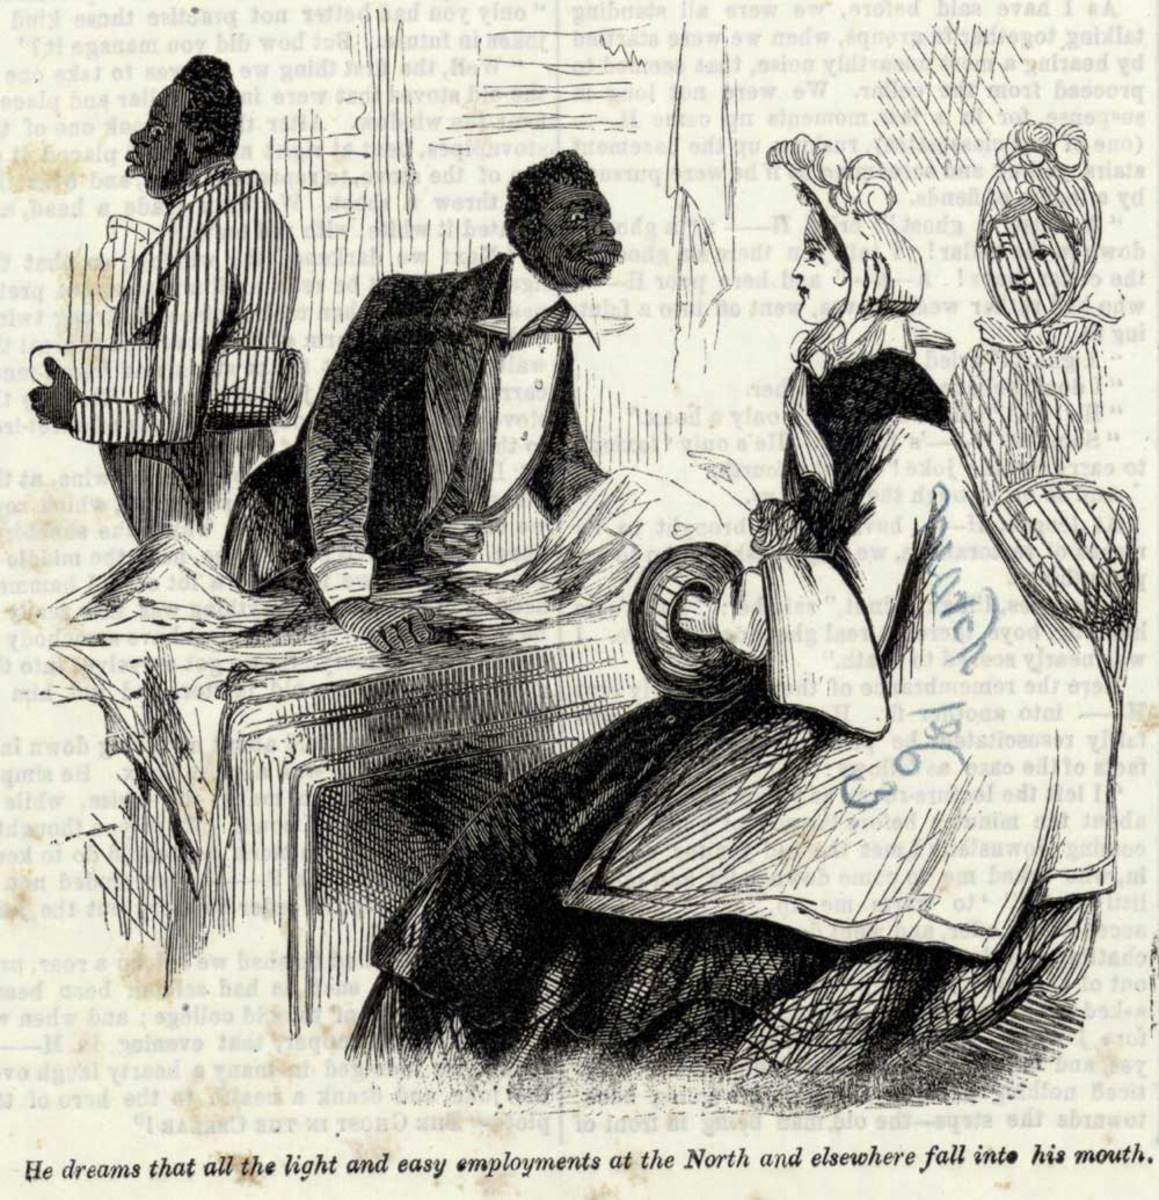 Stereotyping African Americans Through Caricatures